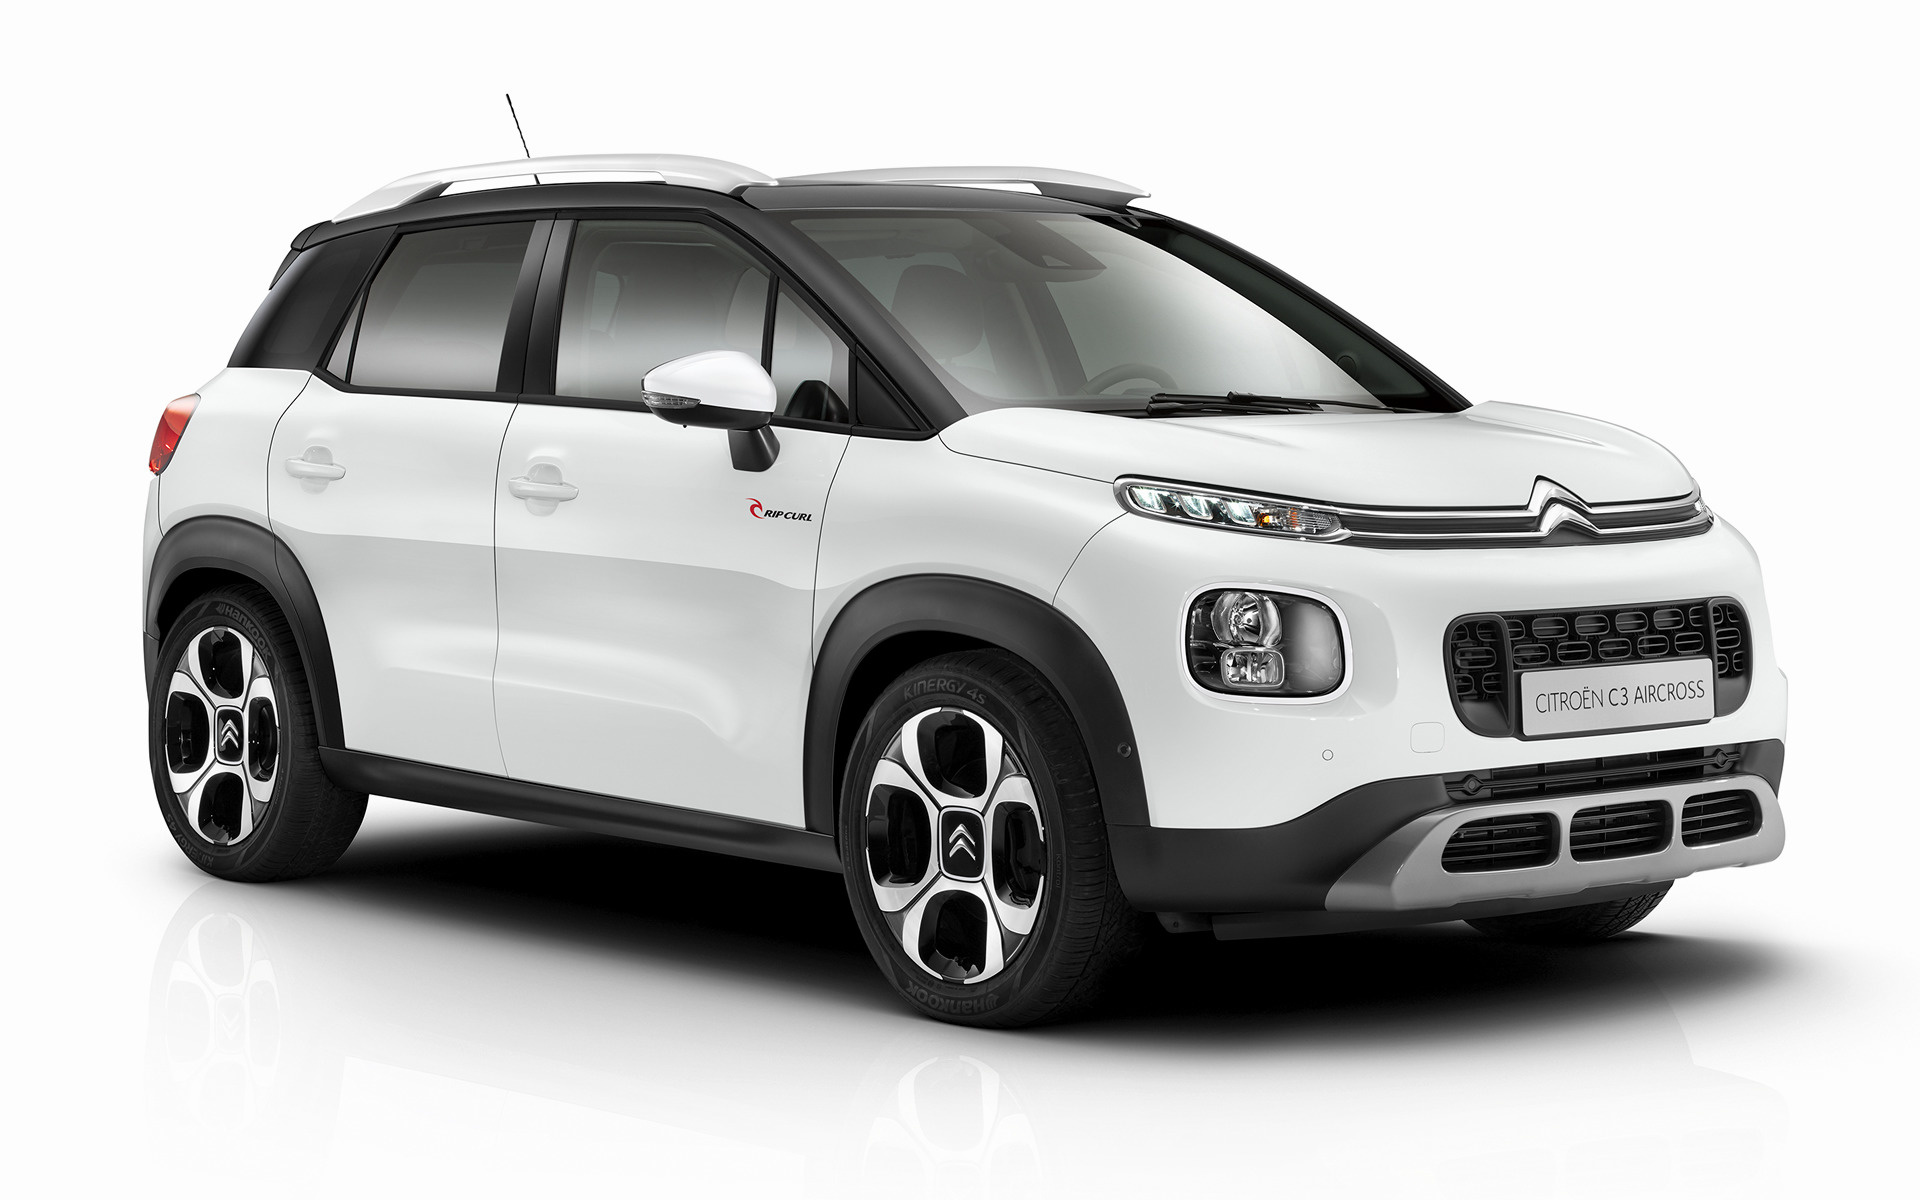 2018 Citroen C3 Aircross Rip Curl Wallpapers And Hd